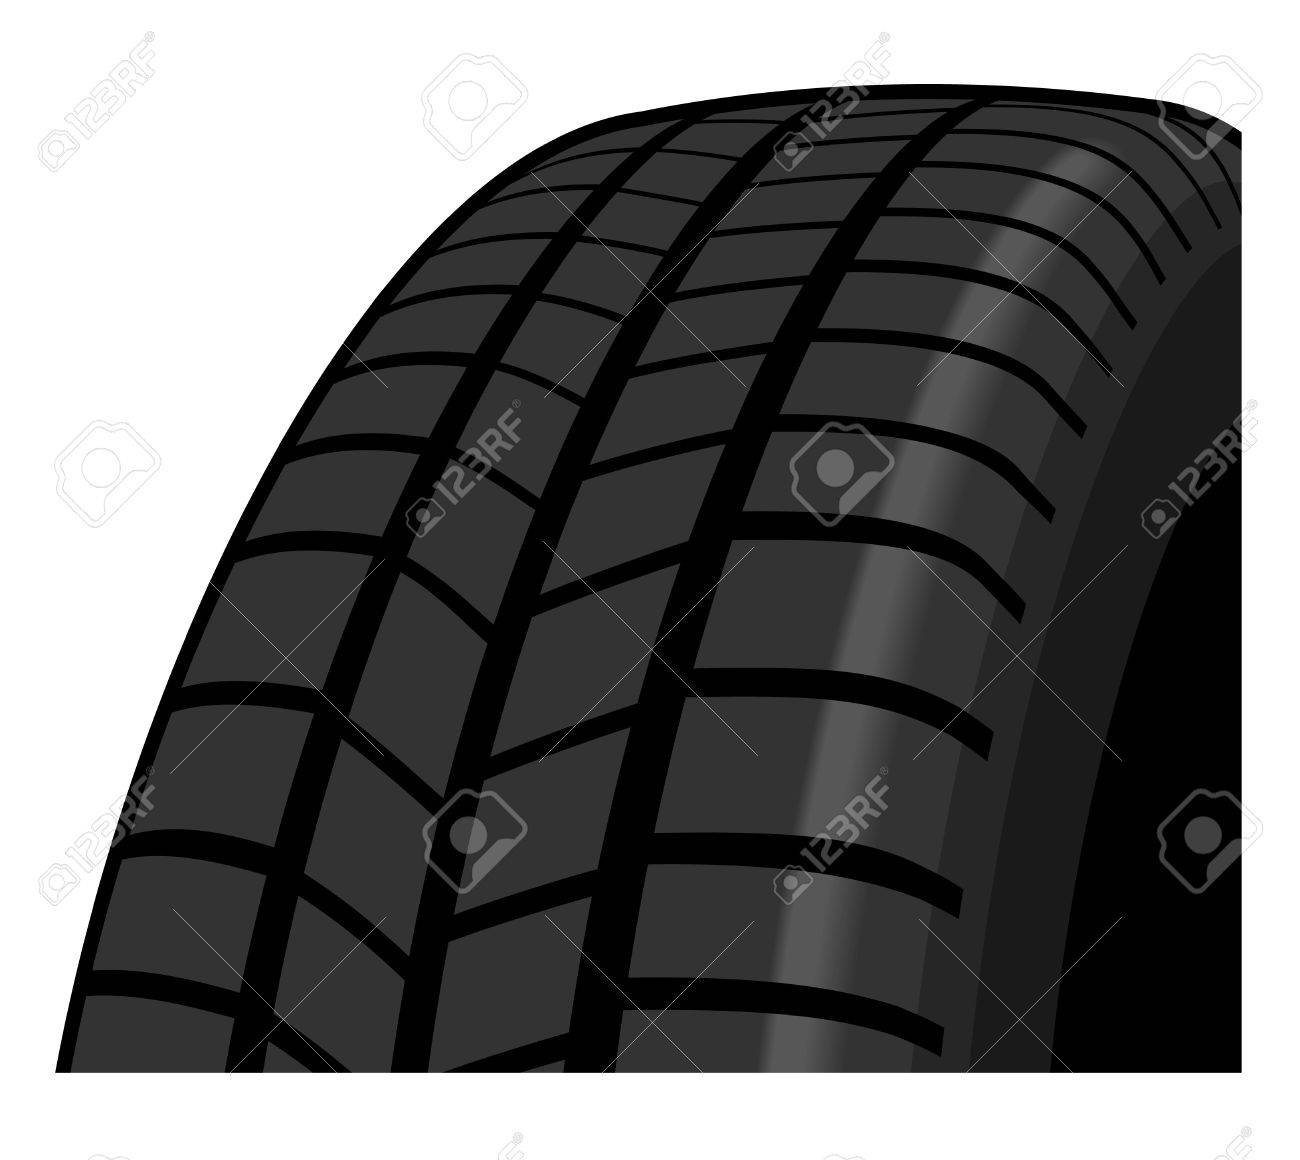 Tyre detail showing tread pattern Stock Vector - 13477090